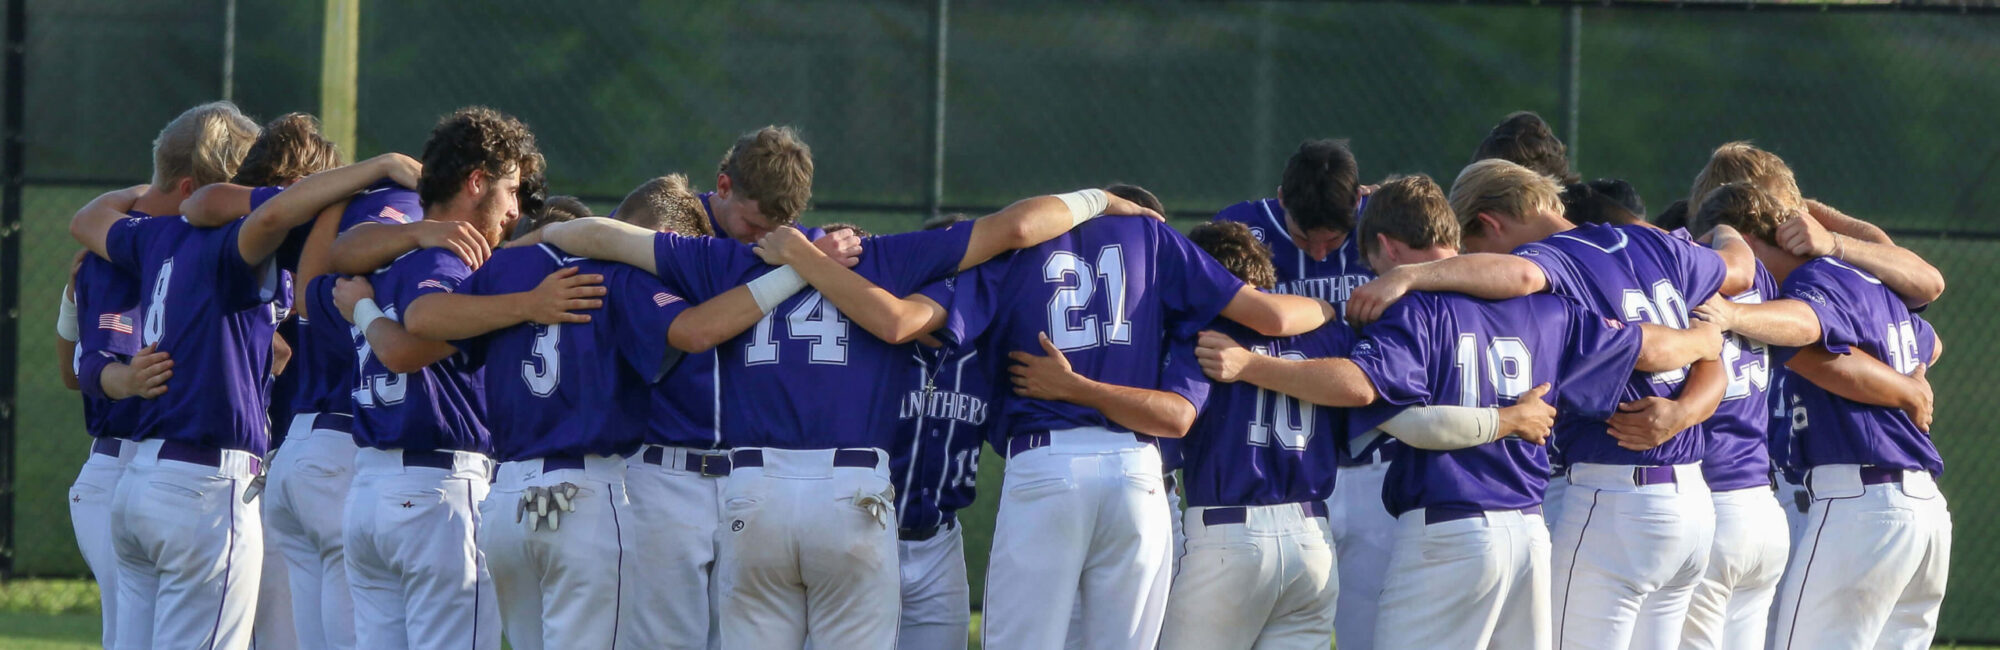 Ridge Point Baseball